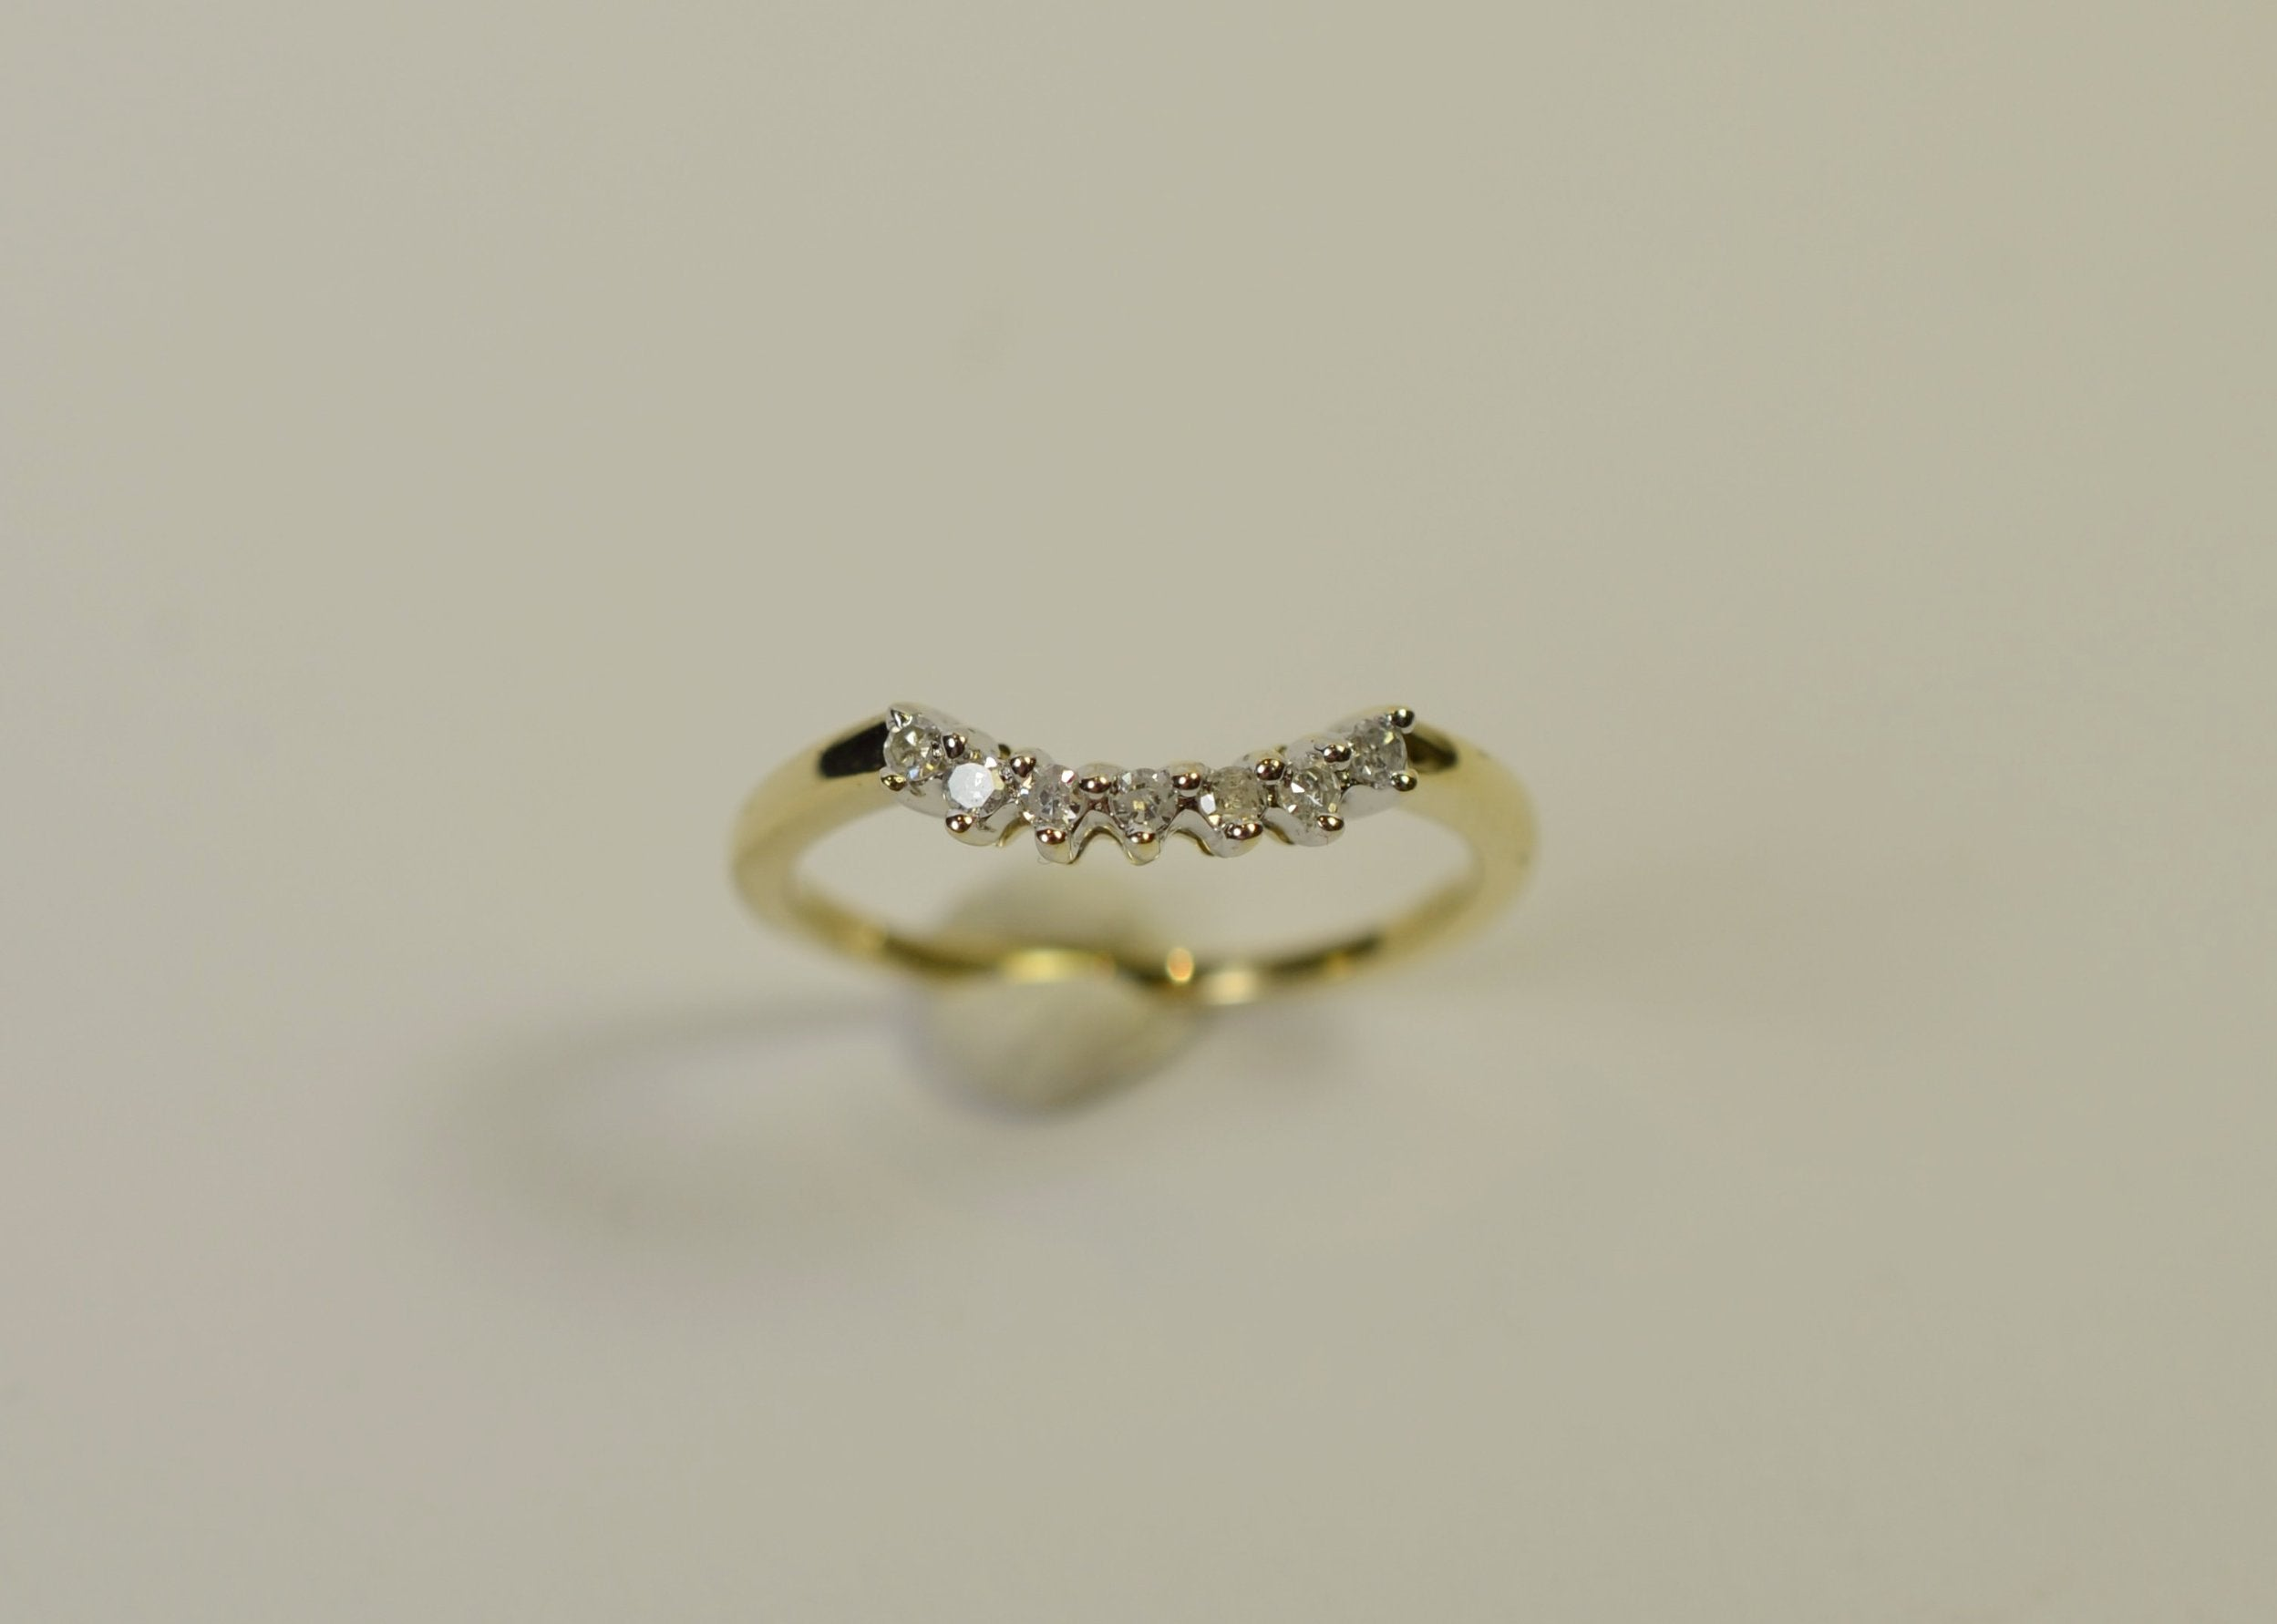 accentuated prong thoughtful classic ceiling beautiful diamonds rounded polish high of crown uncomplicated on string each an diamond product elegant single perfectly and engineered a by